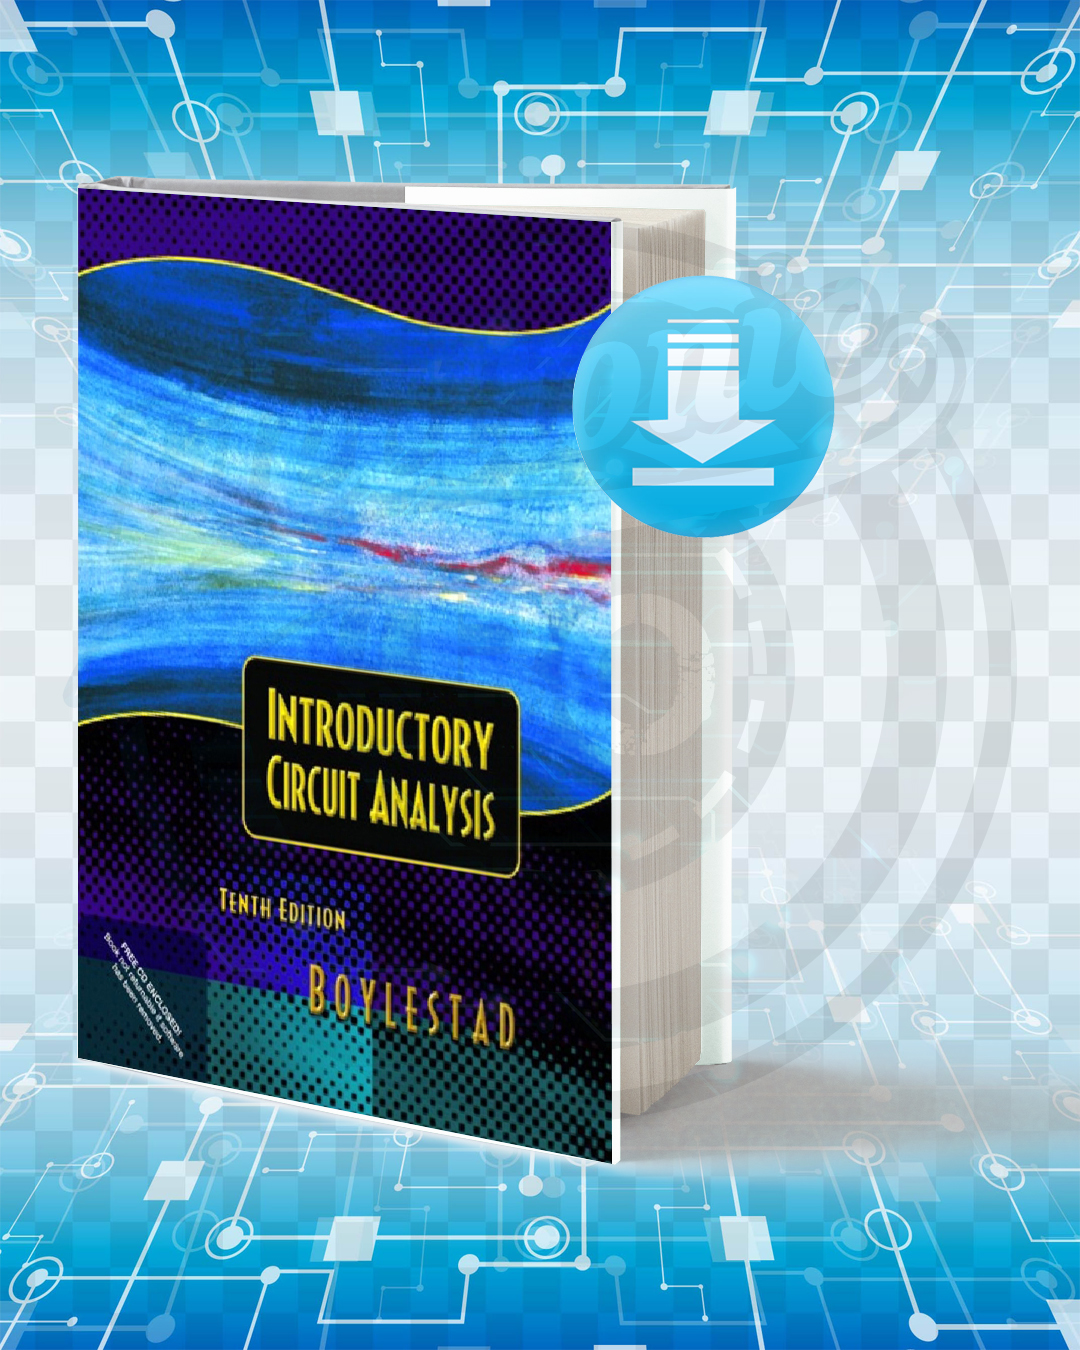 Free Book Introductory Circuit Analysis pdf.